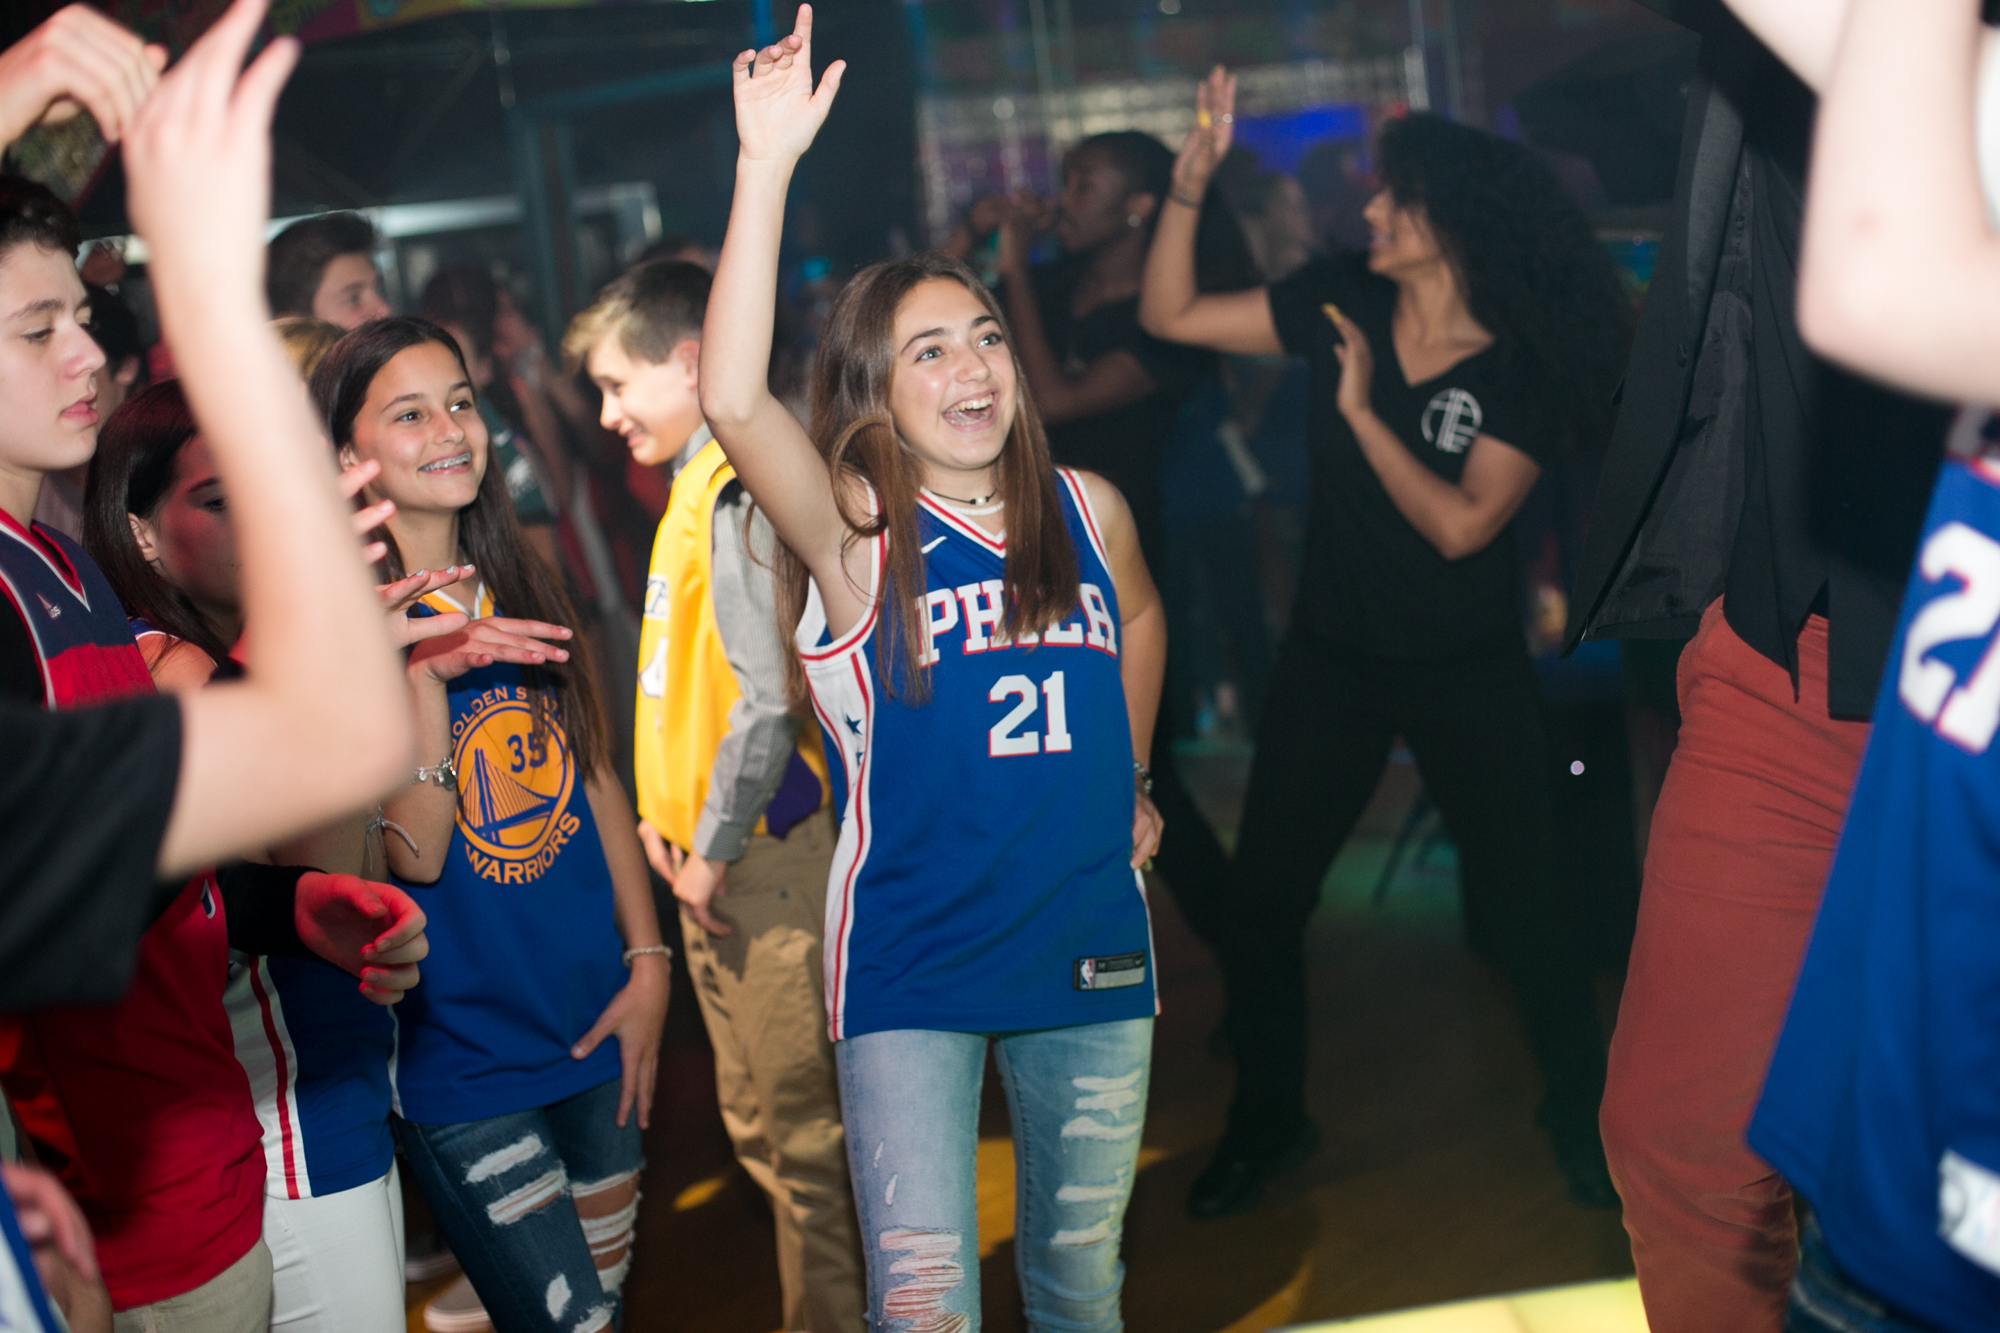 Max_Bar_Mitzvah_Preview (39 of 68).jpg